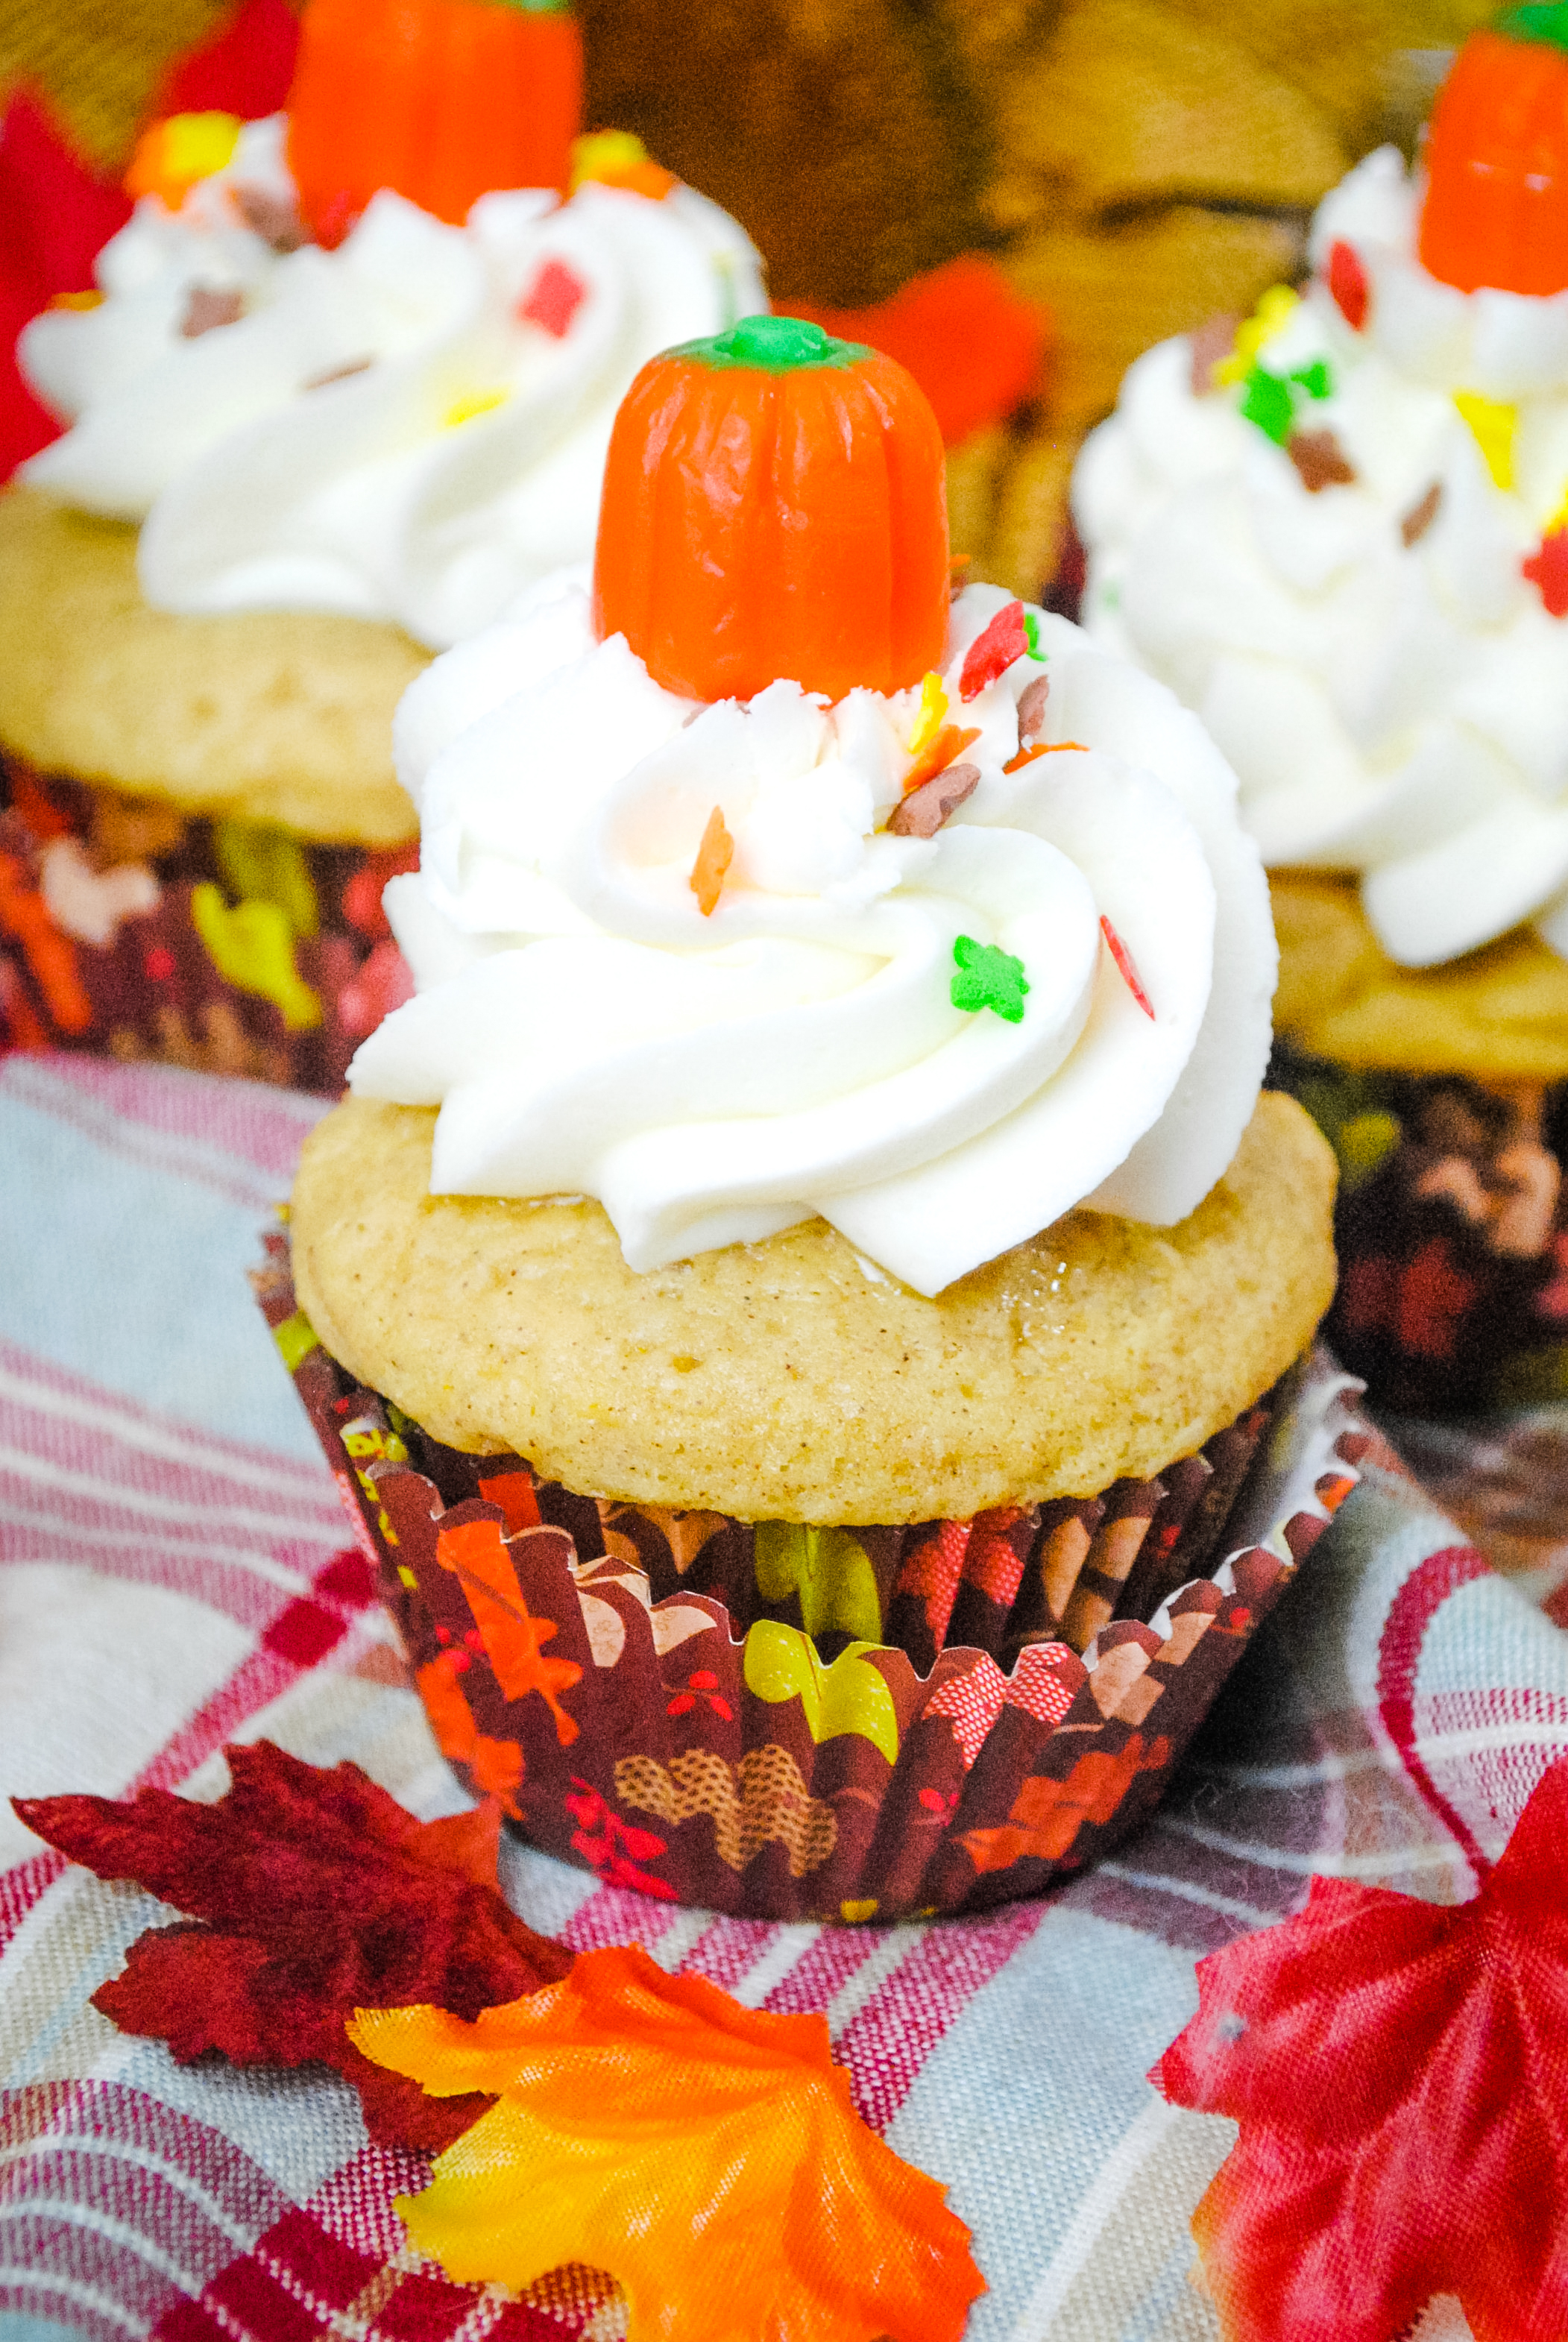 Looking for a delicious pumpkin cupcake? Vanilla pumpkin cupcakes make a great fall treat or for a tasty dessert anytime.  #pumpkin #pumpkinspice #cupcakes